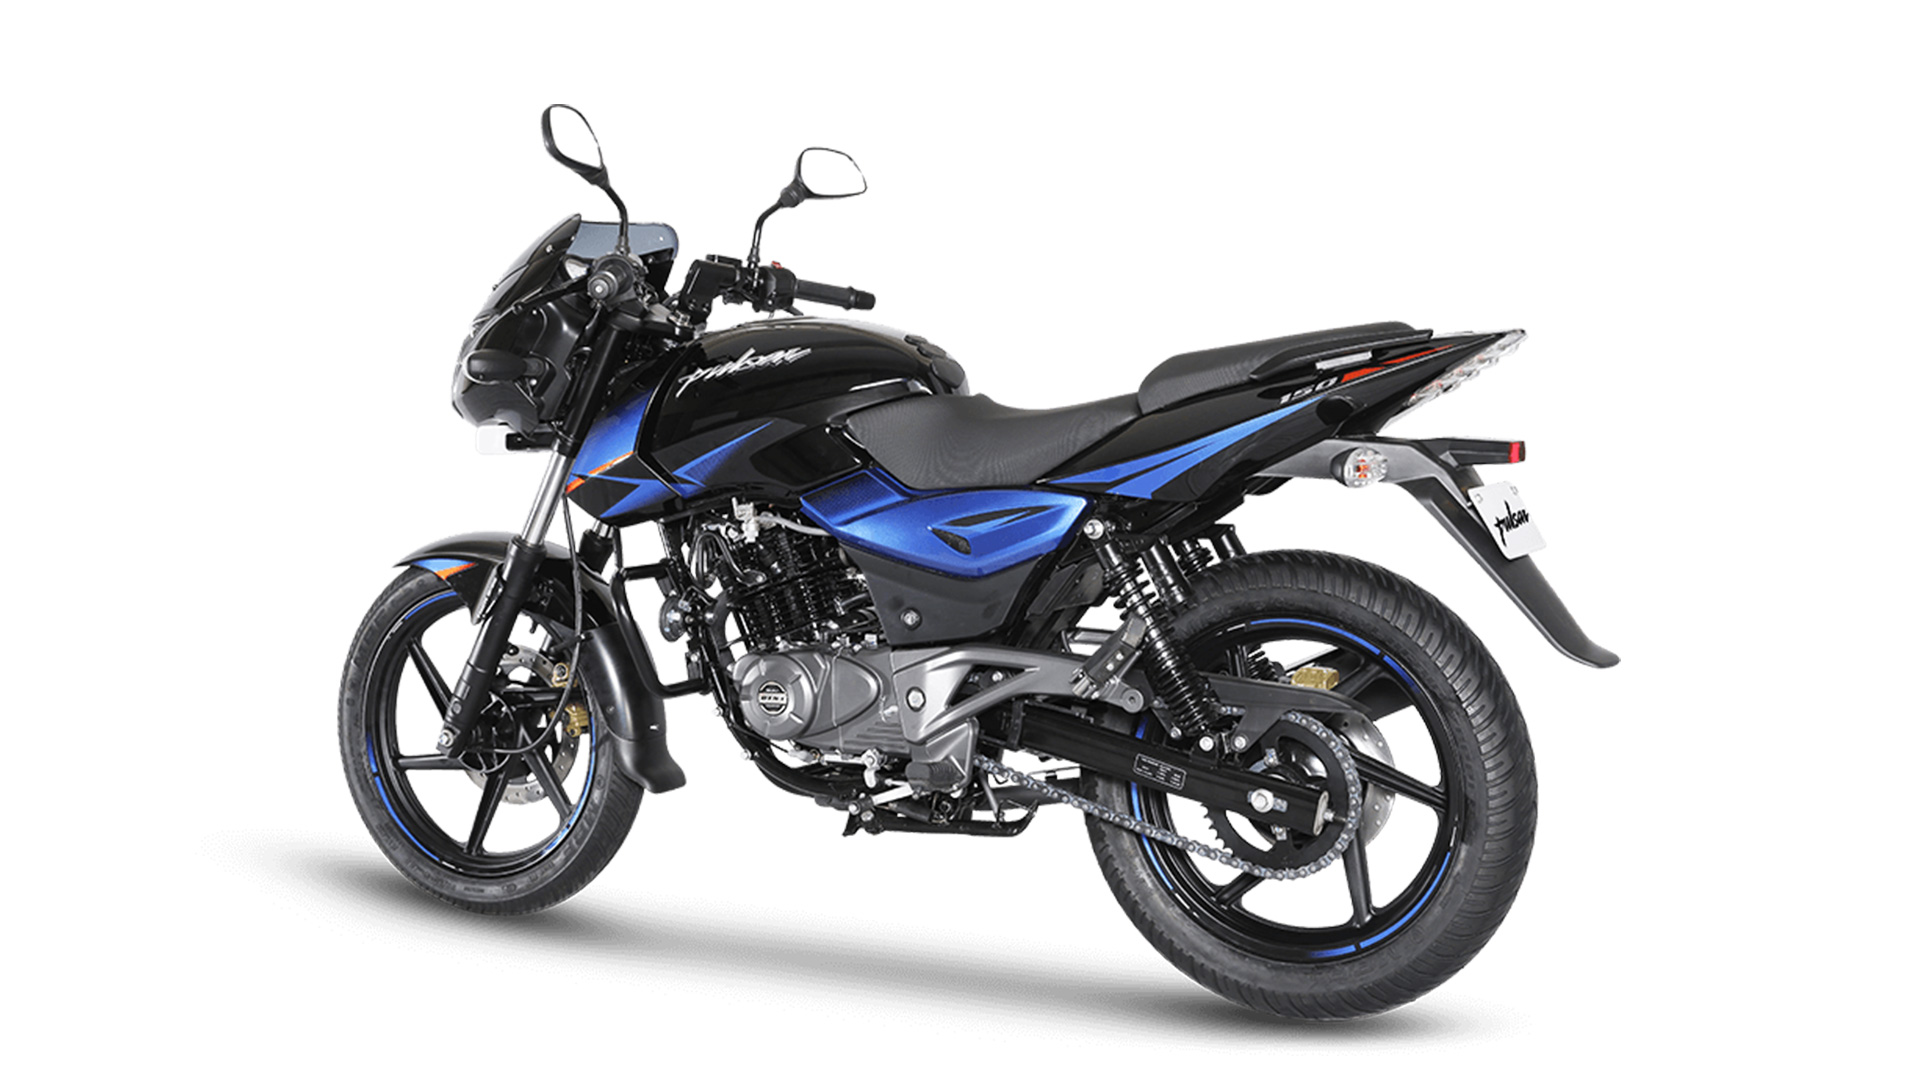 Bajaj Pulsar 150 DTS-i 2019 Neon - Price, Mileage, Reviews